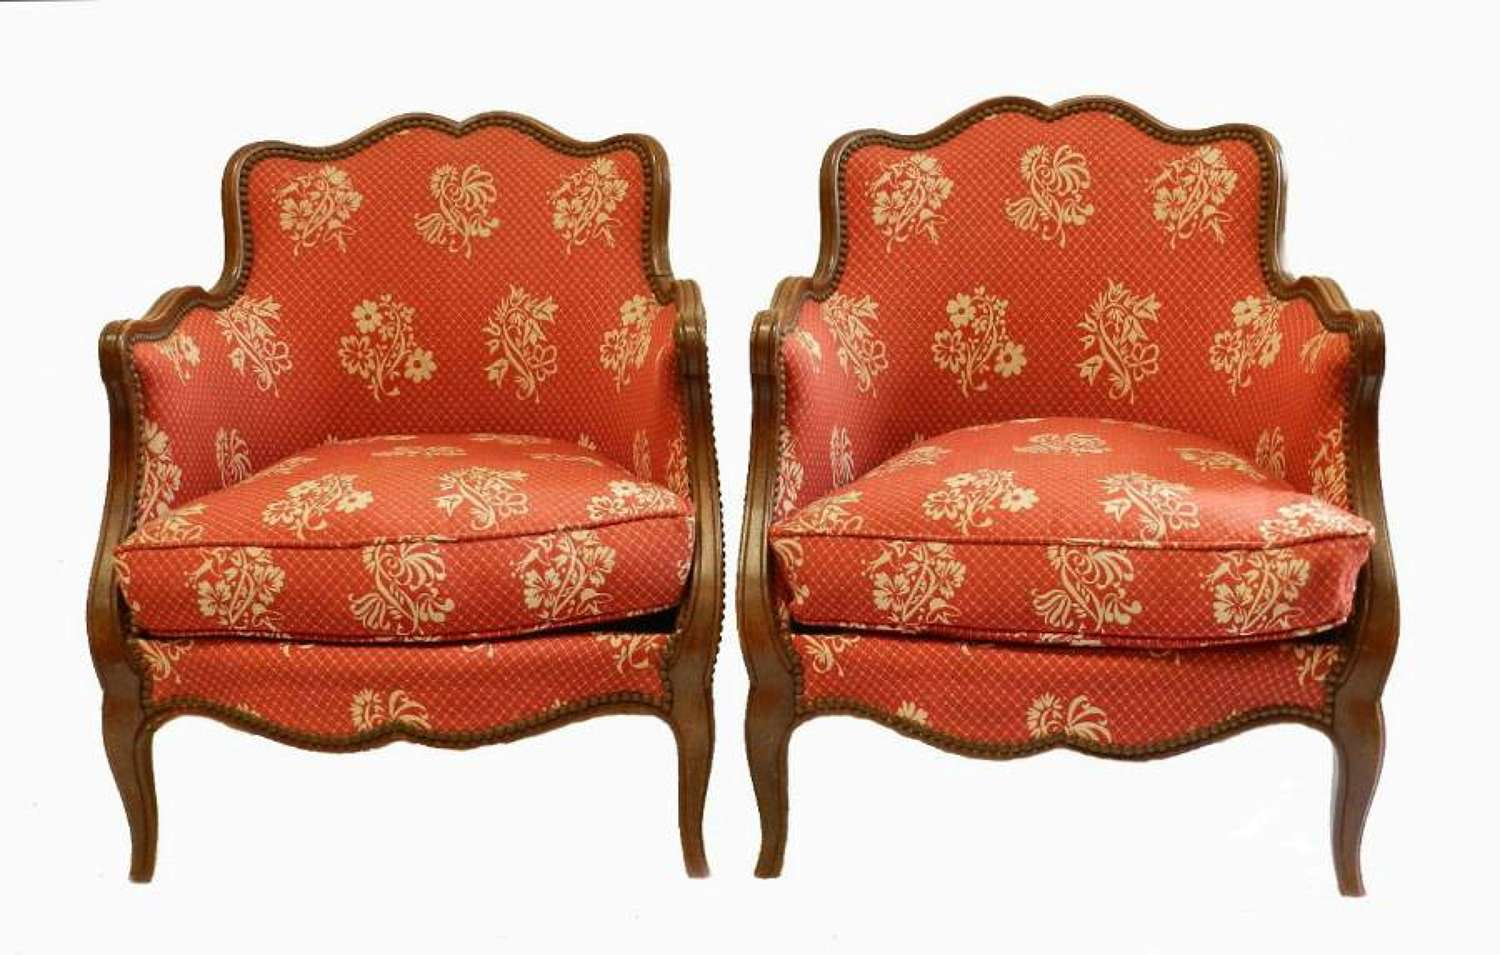 Pair of French Armchairs early C20